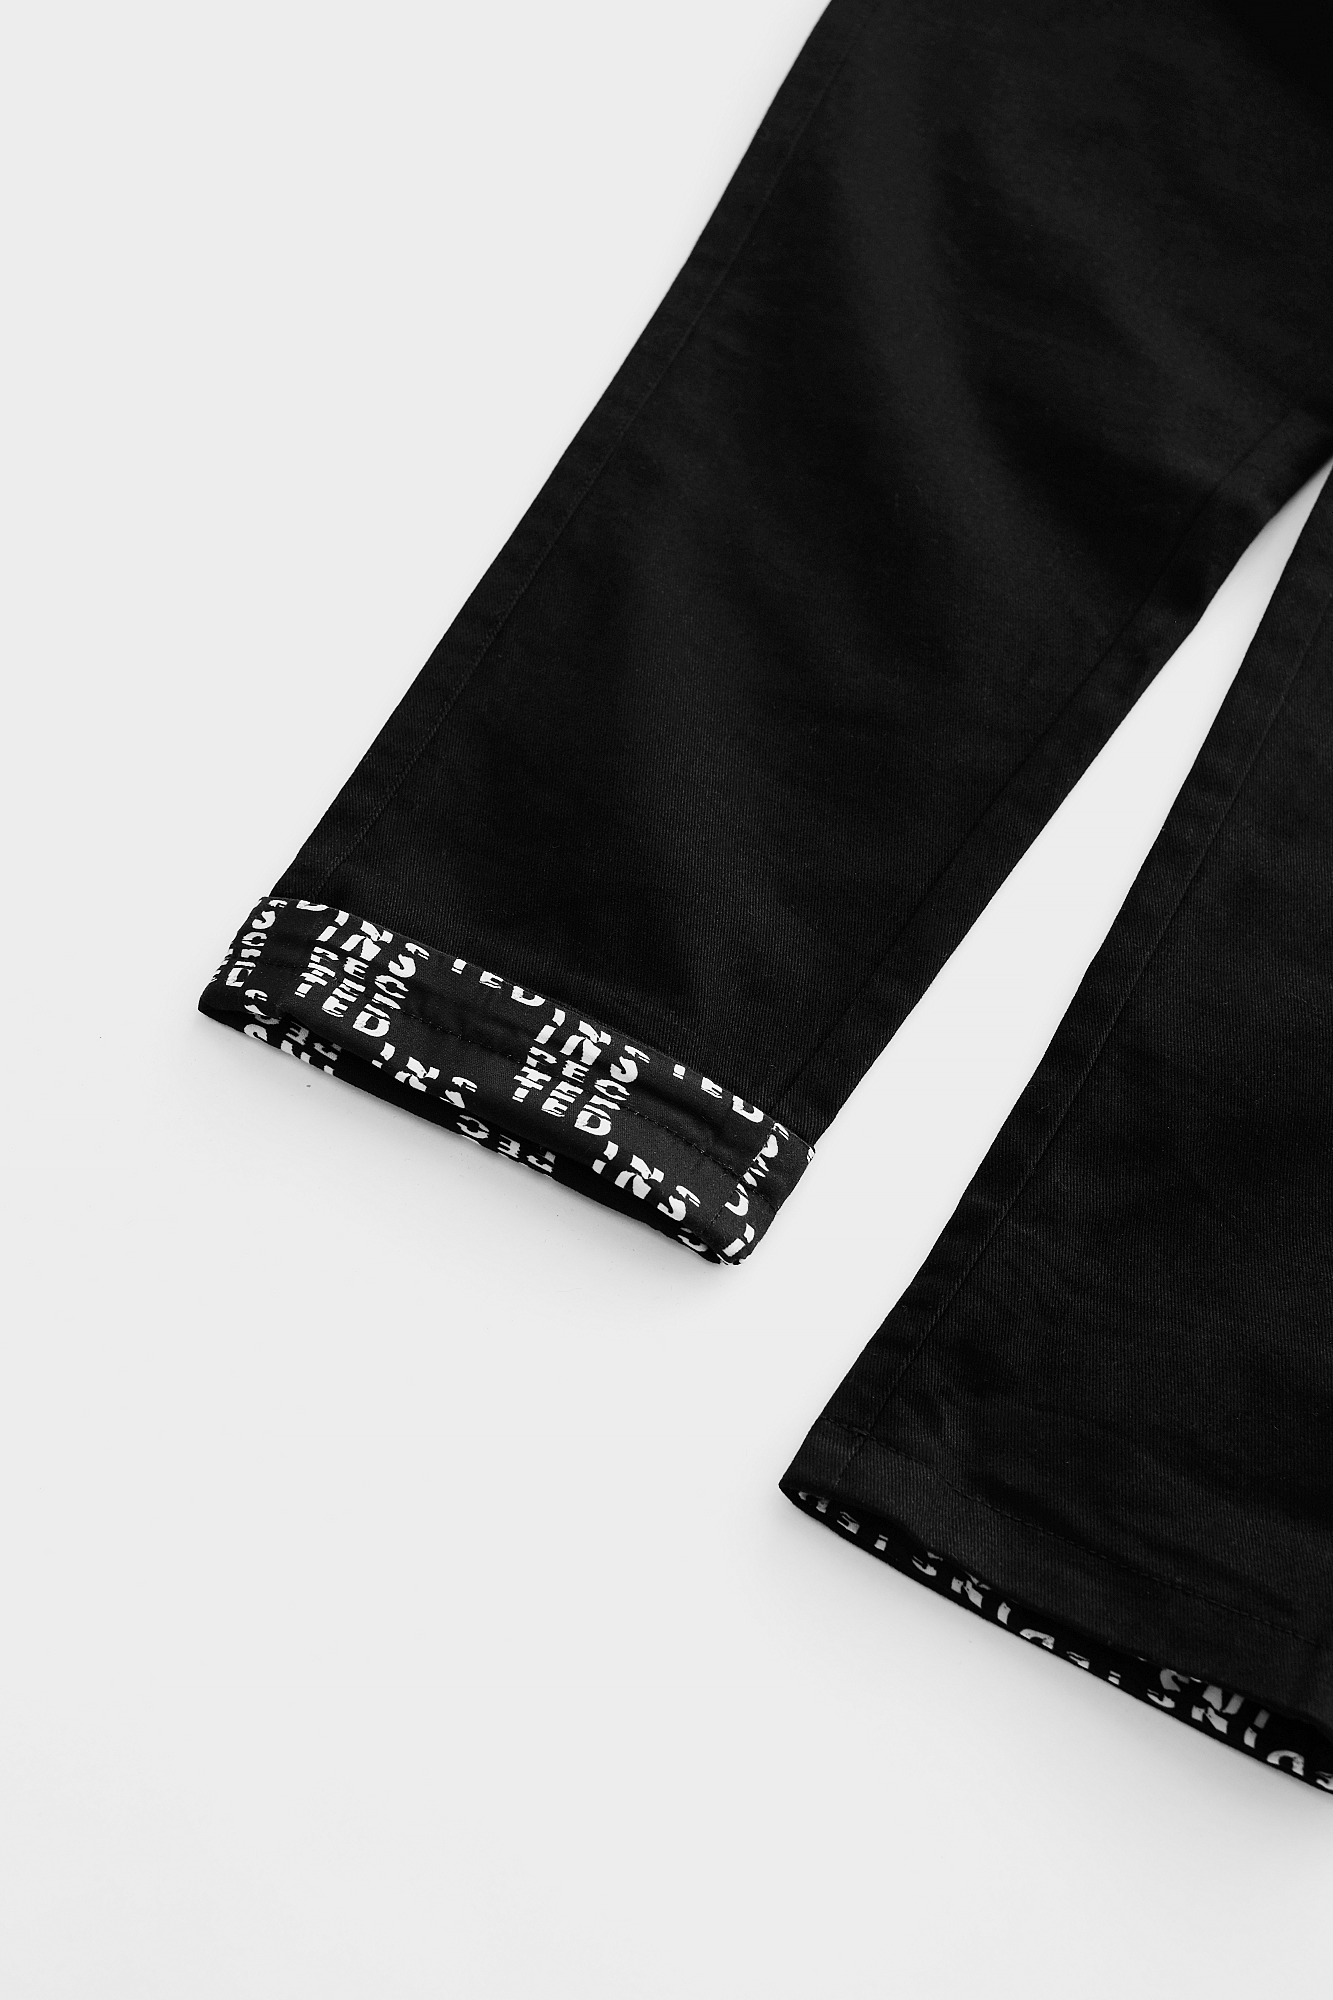 Degraded Pant — Black